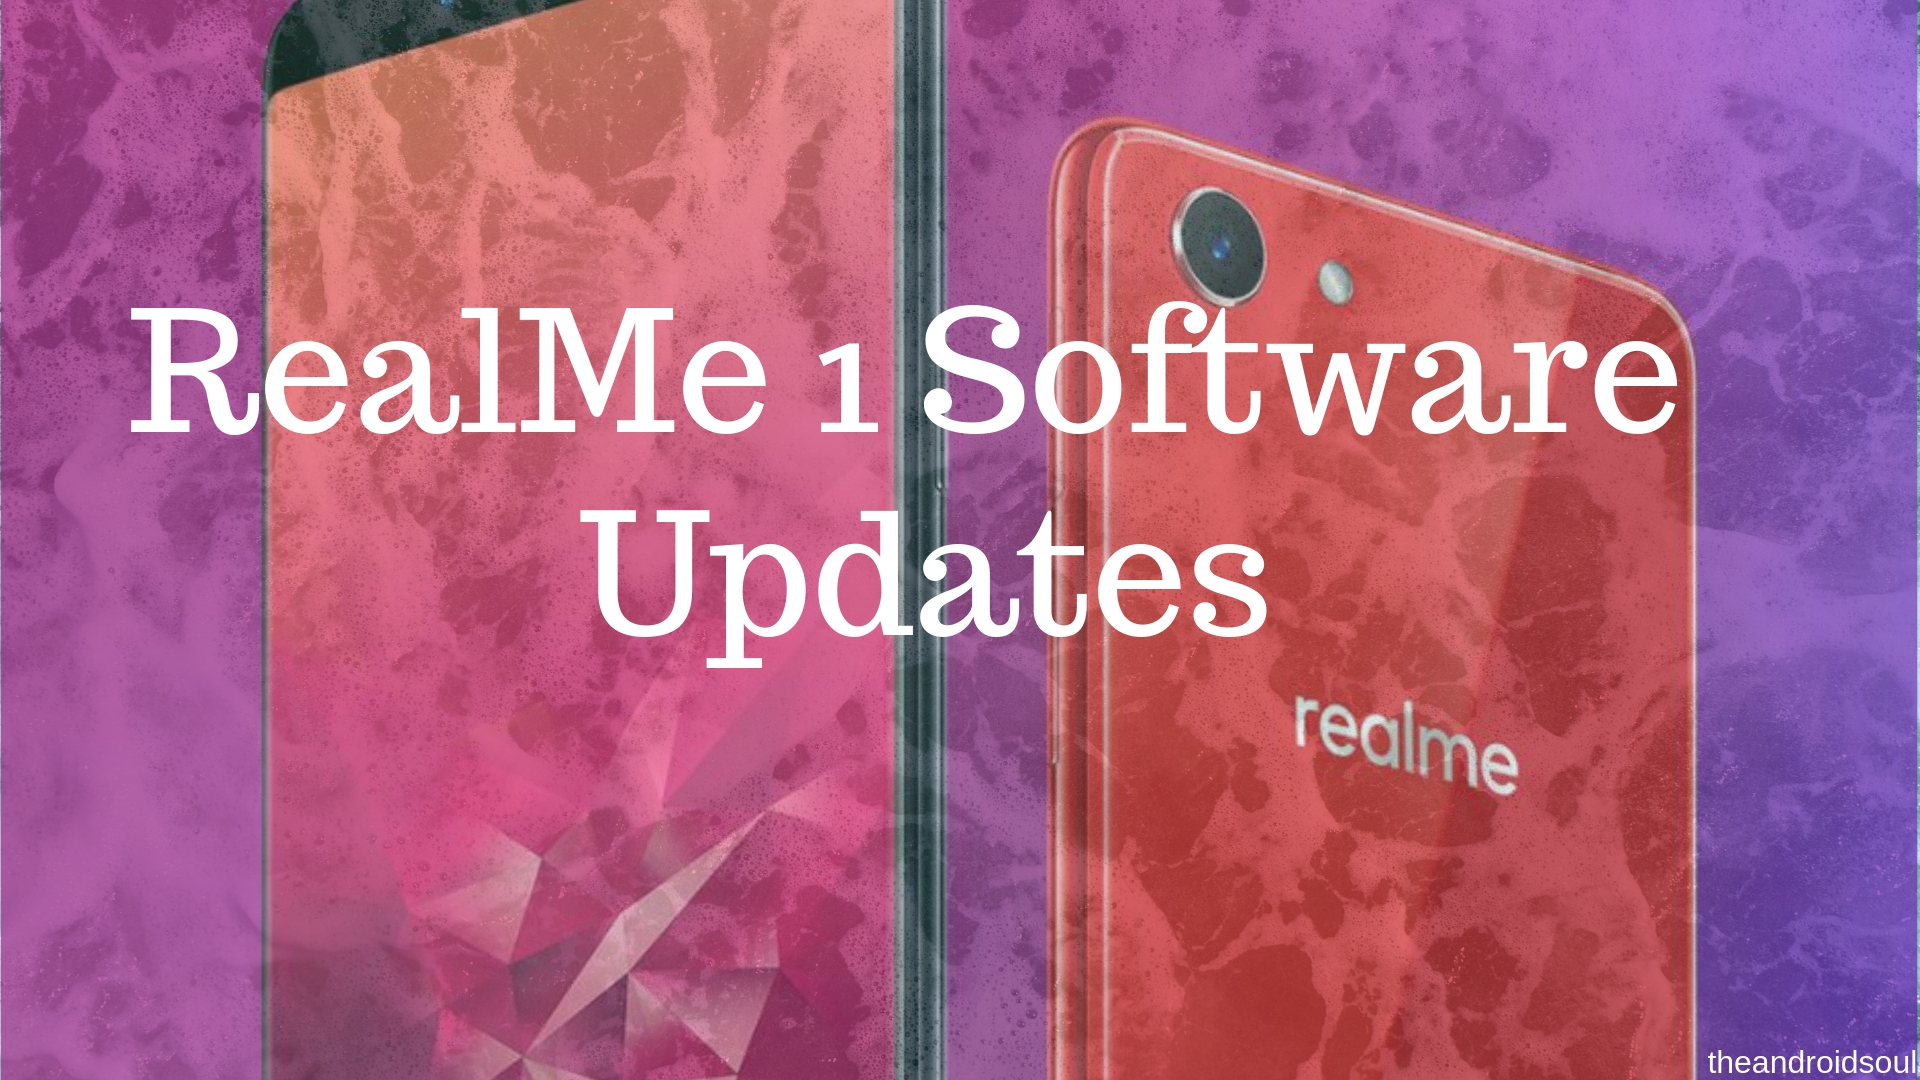 RealMe 1 Software Updates